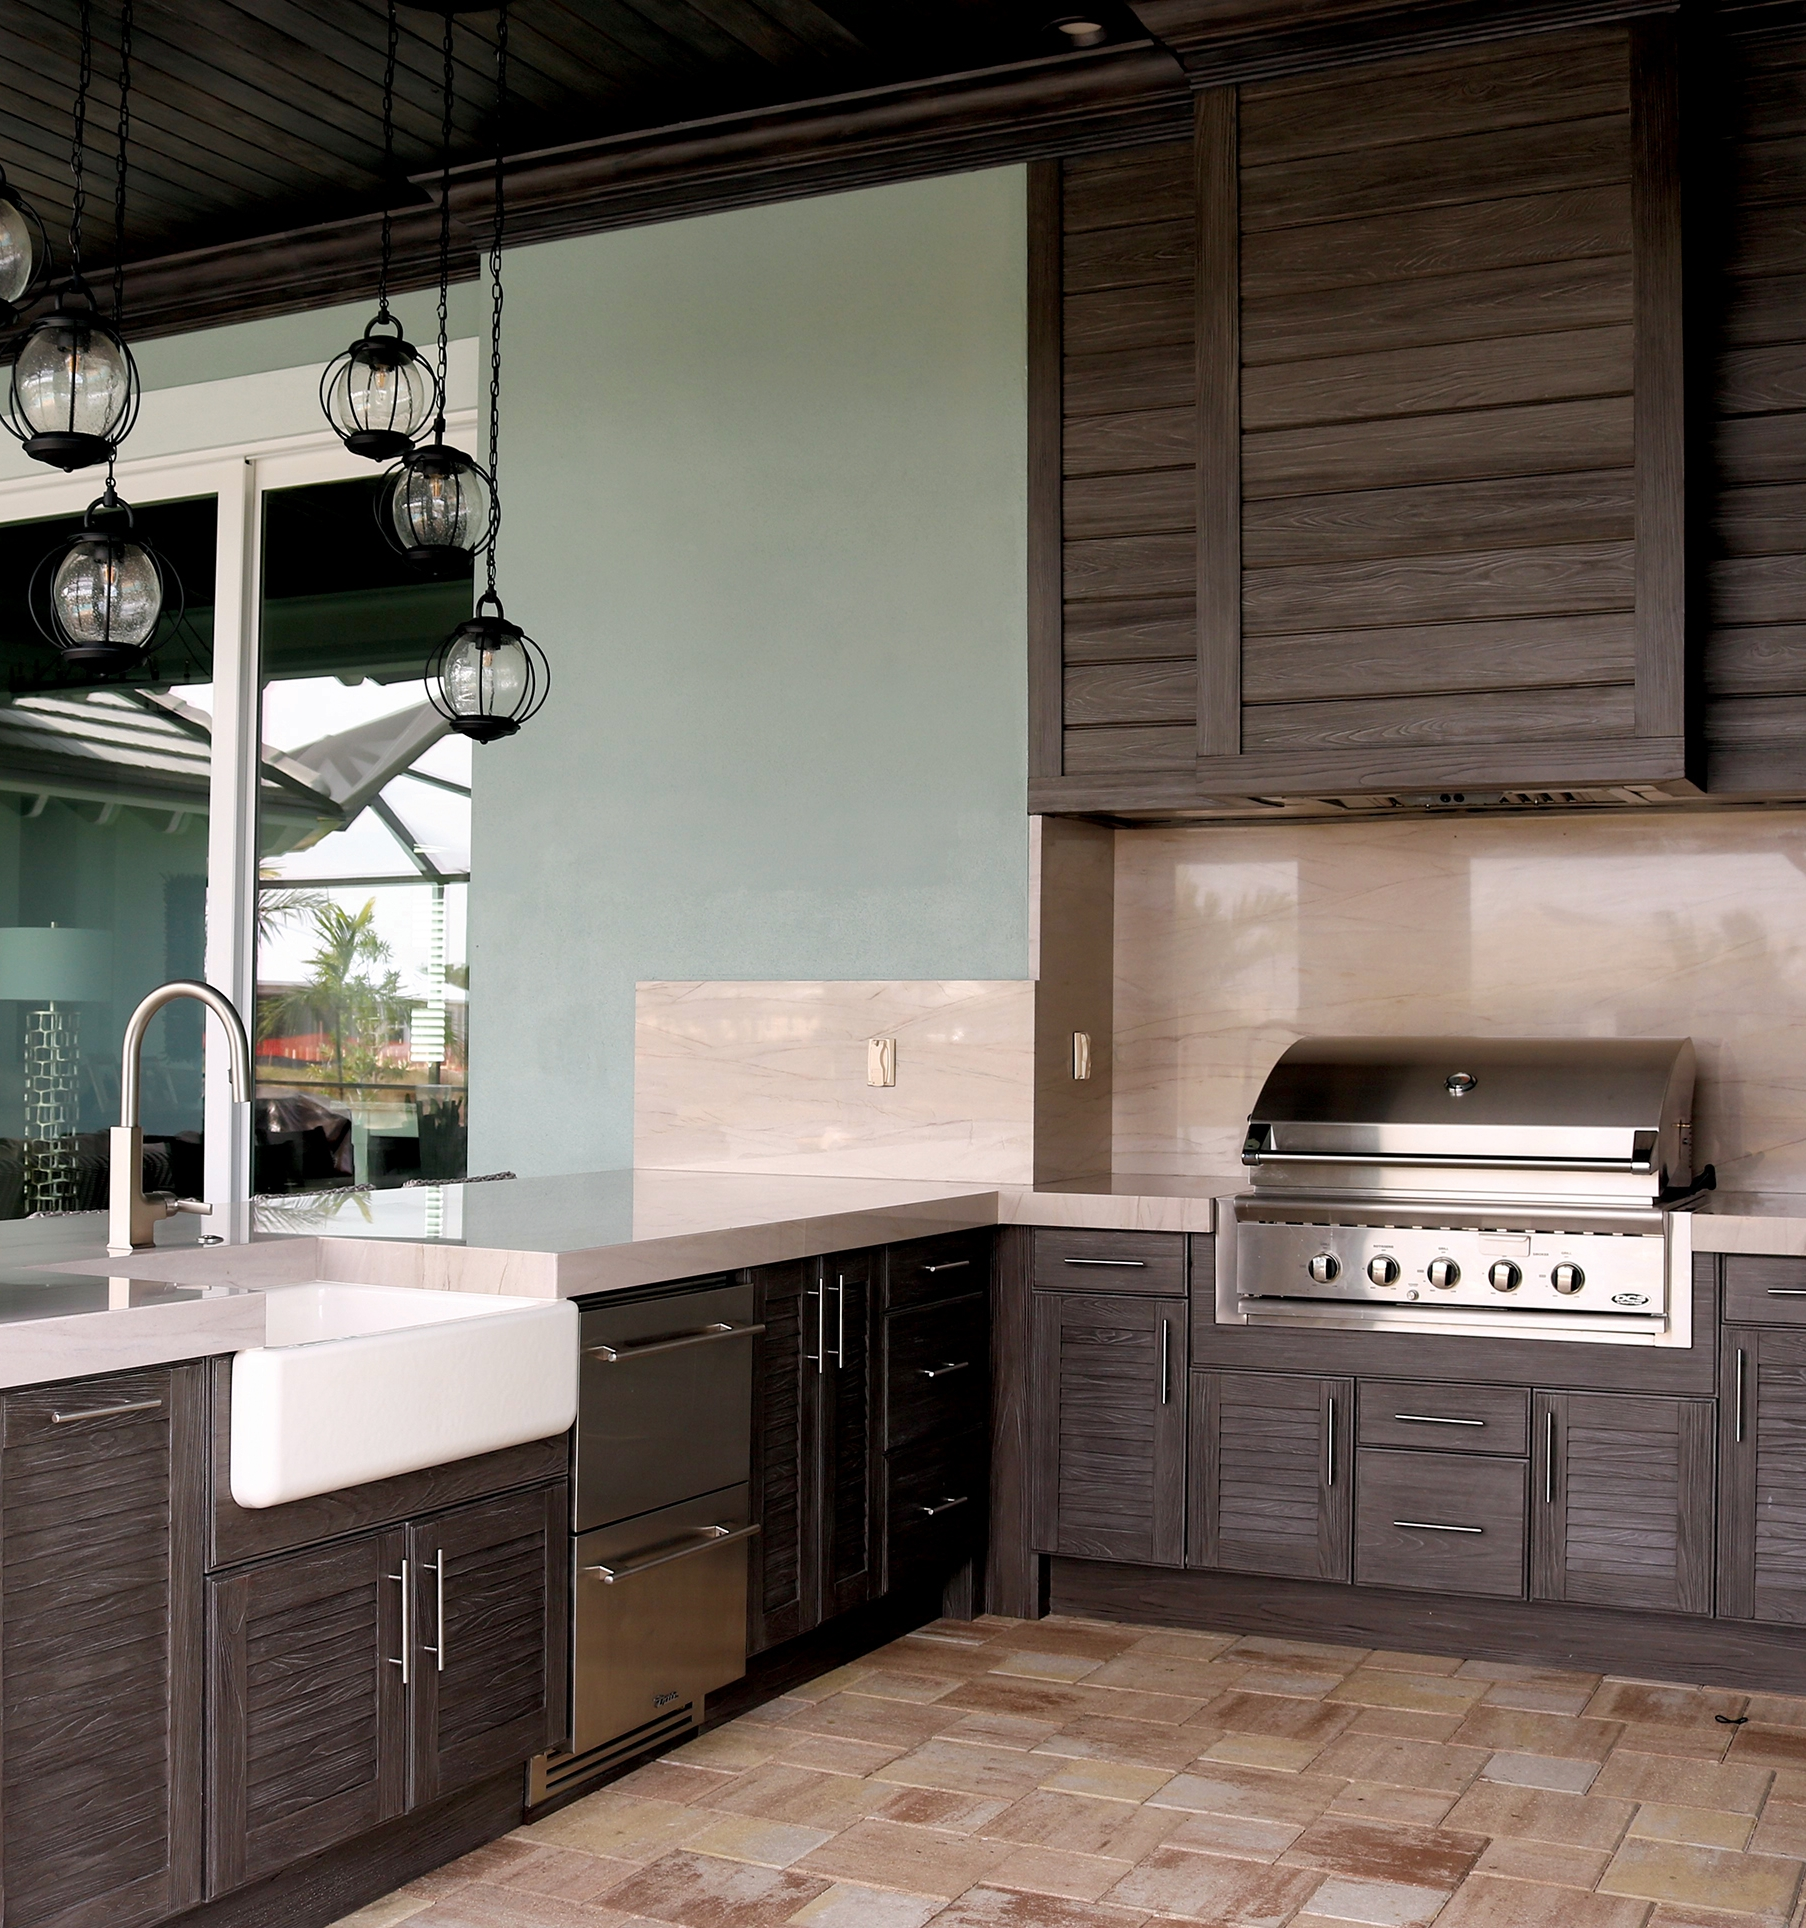 outdoor-kitchen-place-your-home-magazine2.jpg